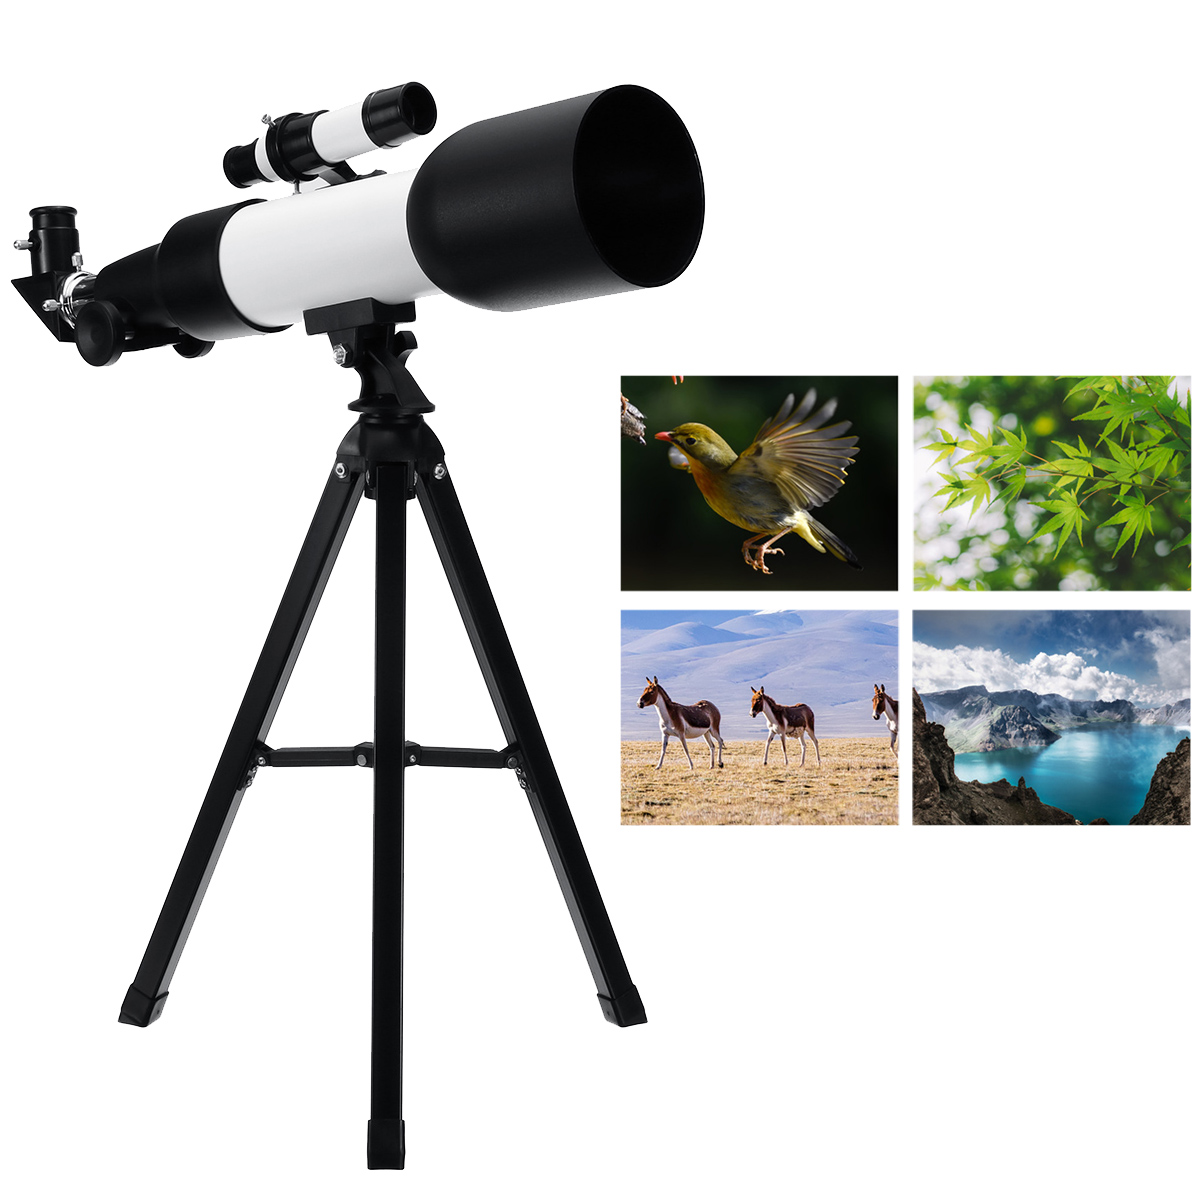 F360/60Mm HD Astronomical Telescope 90° Celestial Mirror Clear Image High Magnification Monocular Starry Sky Viewing with Tripod